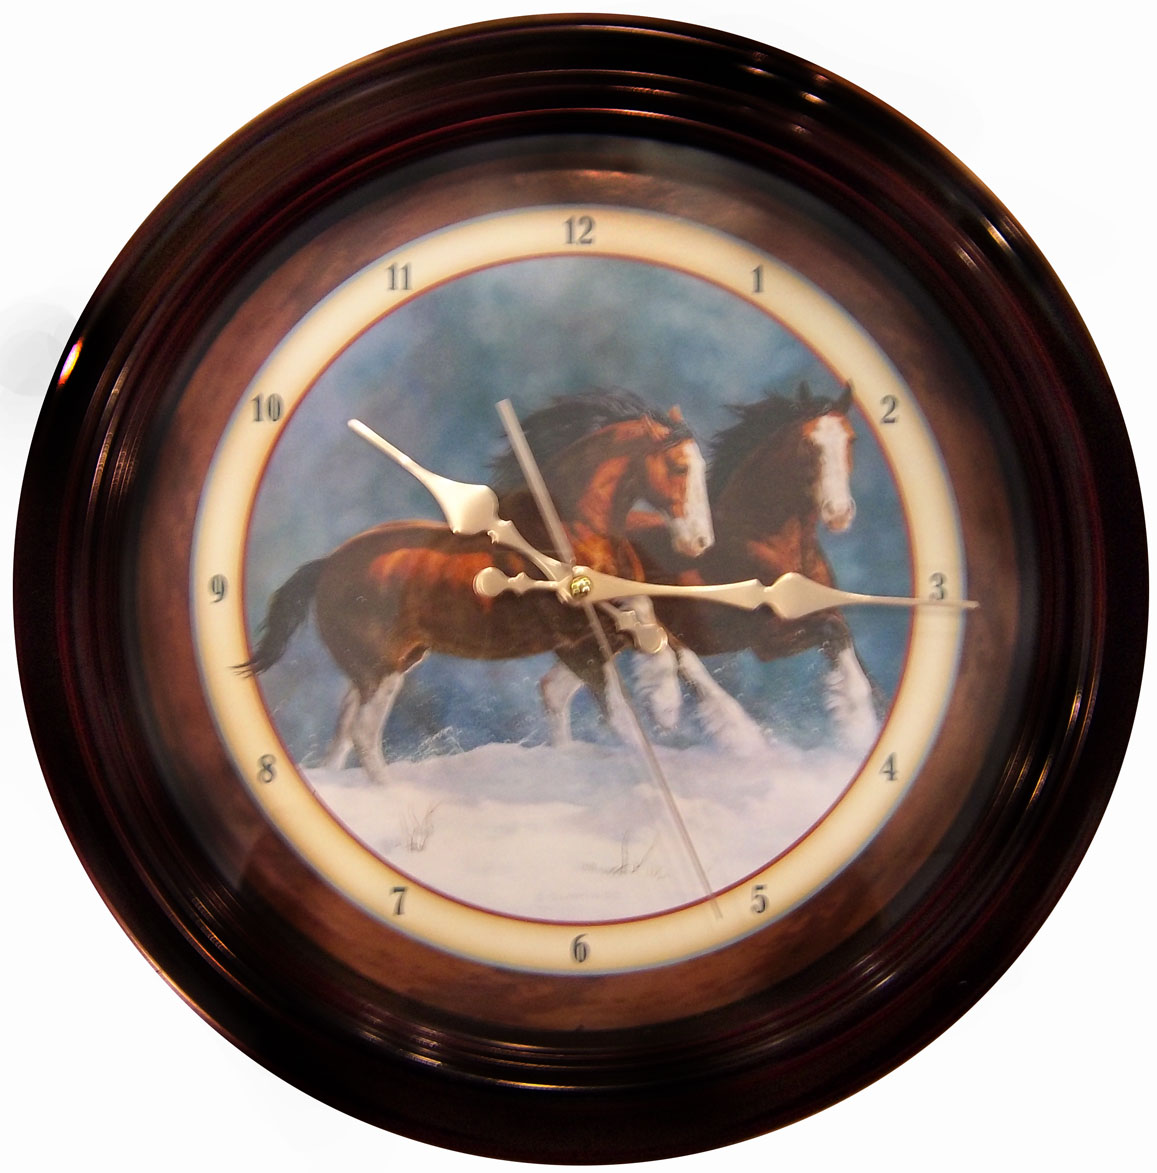 Clydesdale Clock